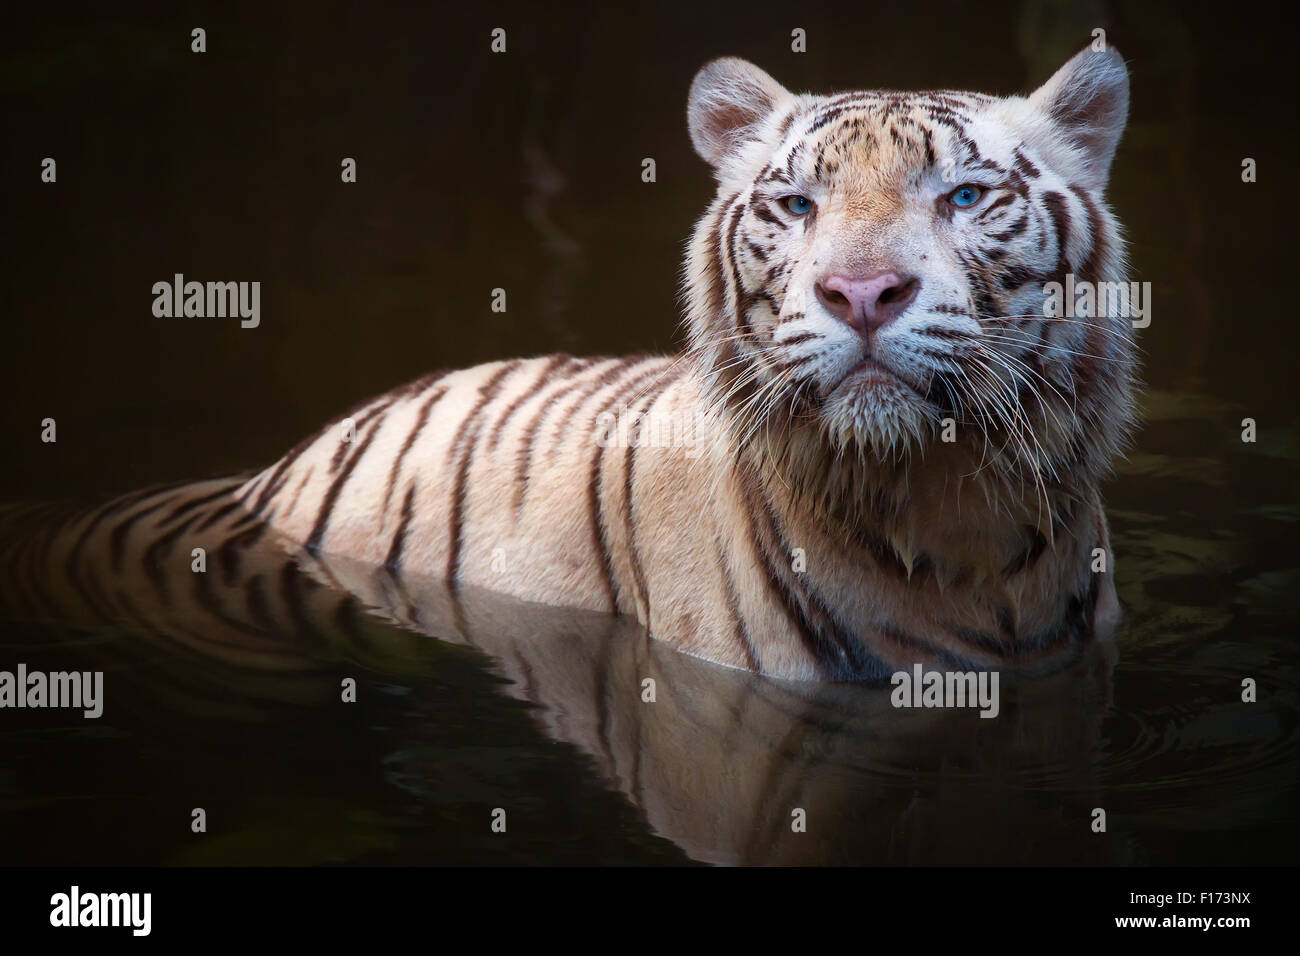 White Tiger Symbol Of Success And Might Stock Photo 86823126 Alamy